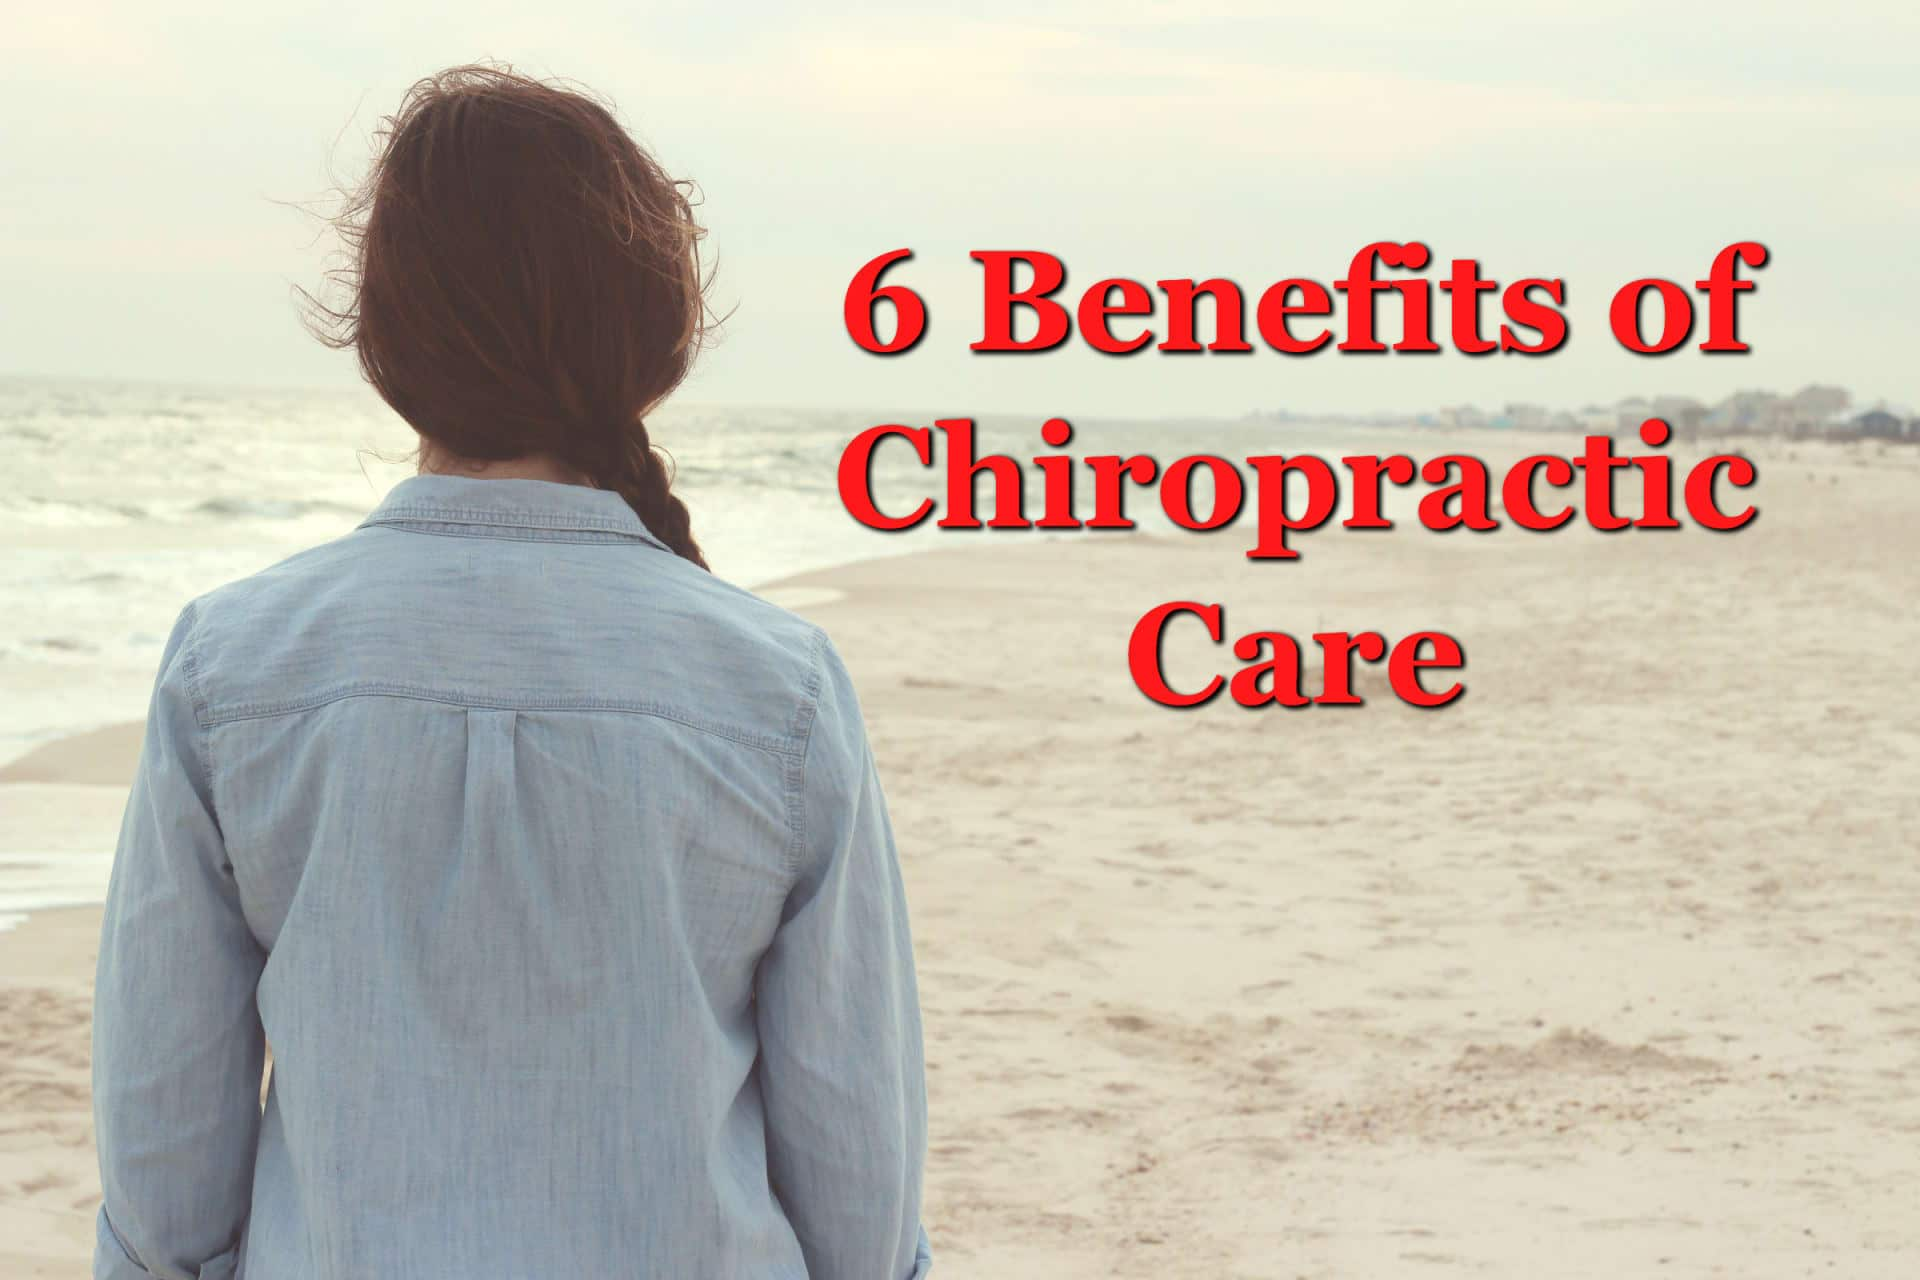 The 6 Benefits of Chiropractic Care That Get You Relief